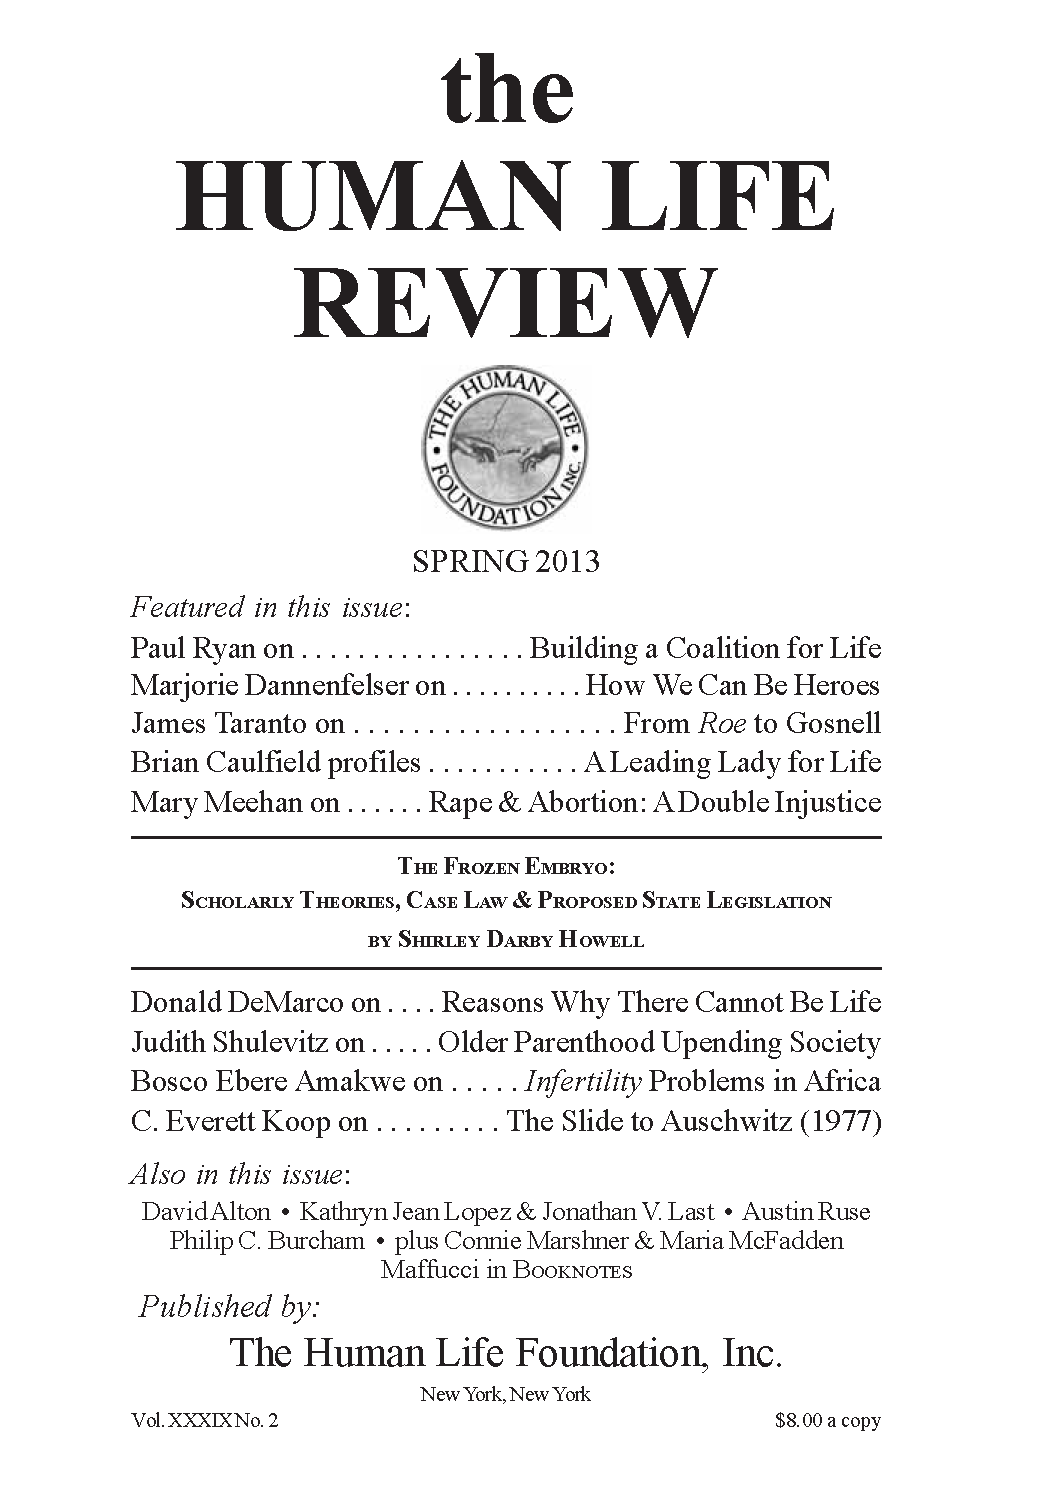 e9164a79a239a The Human Life Review Spring 2013 - The Human Life Review